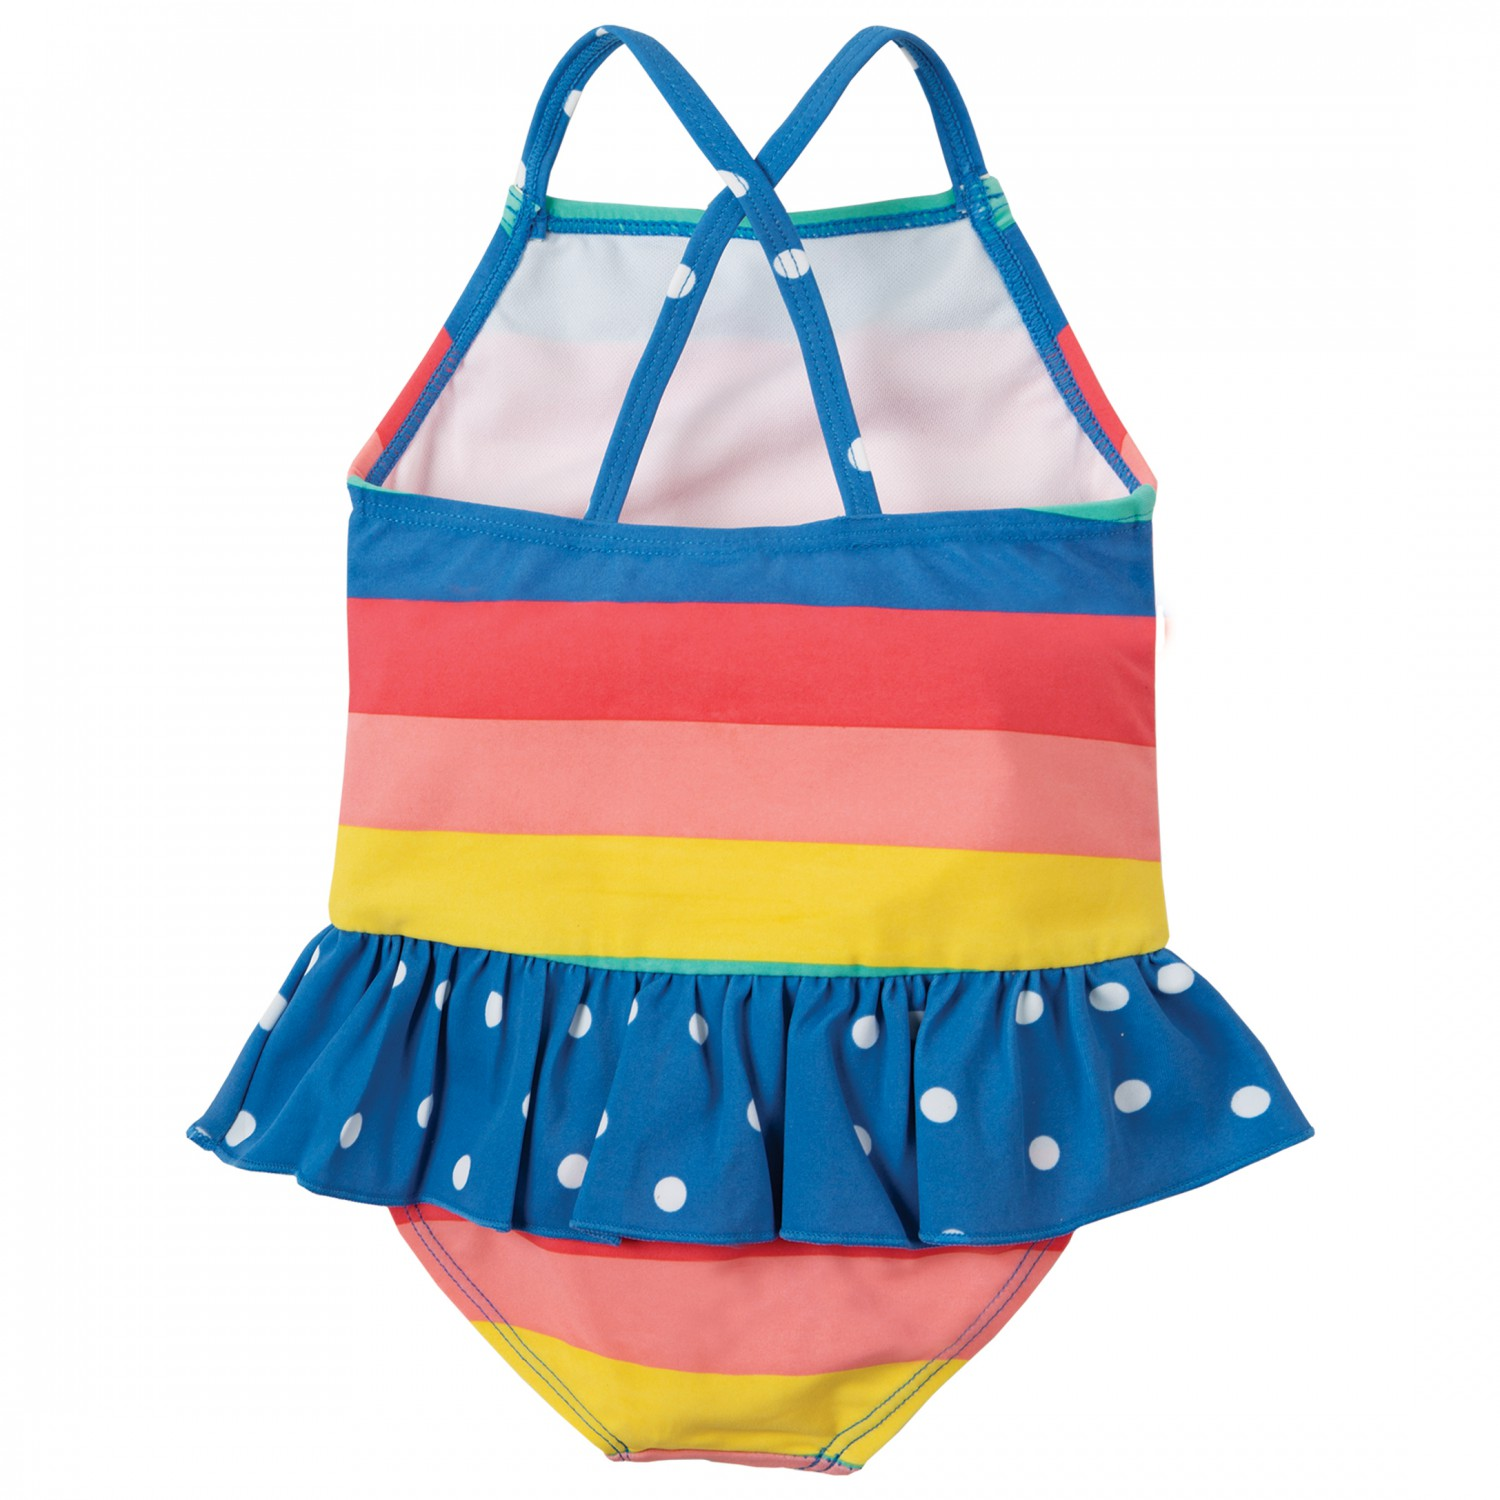 654f382f2f8 Frugi - Kid's Little Coral Swimsuit - Badpak - Bright Rainbow Stripe |  12/18 Months